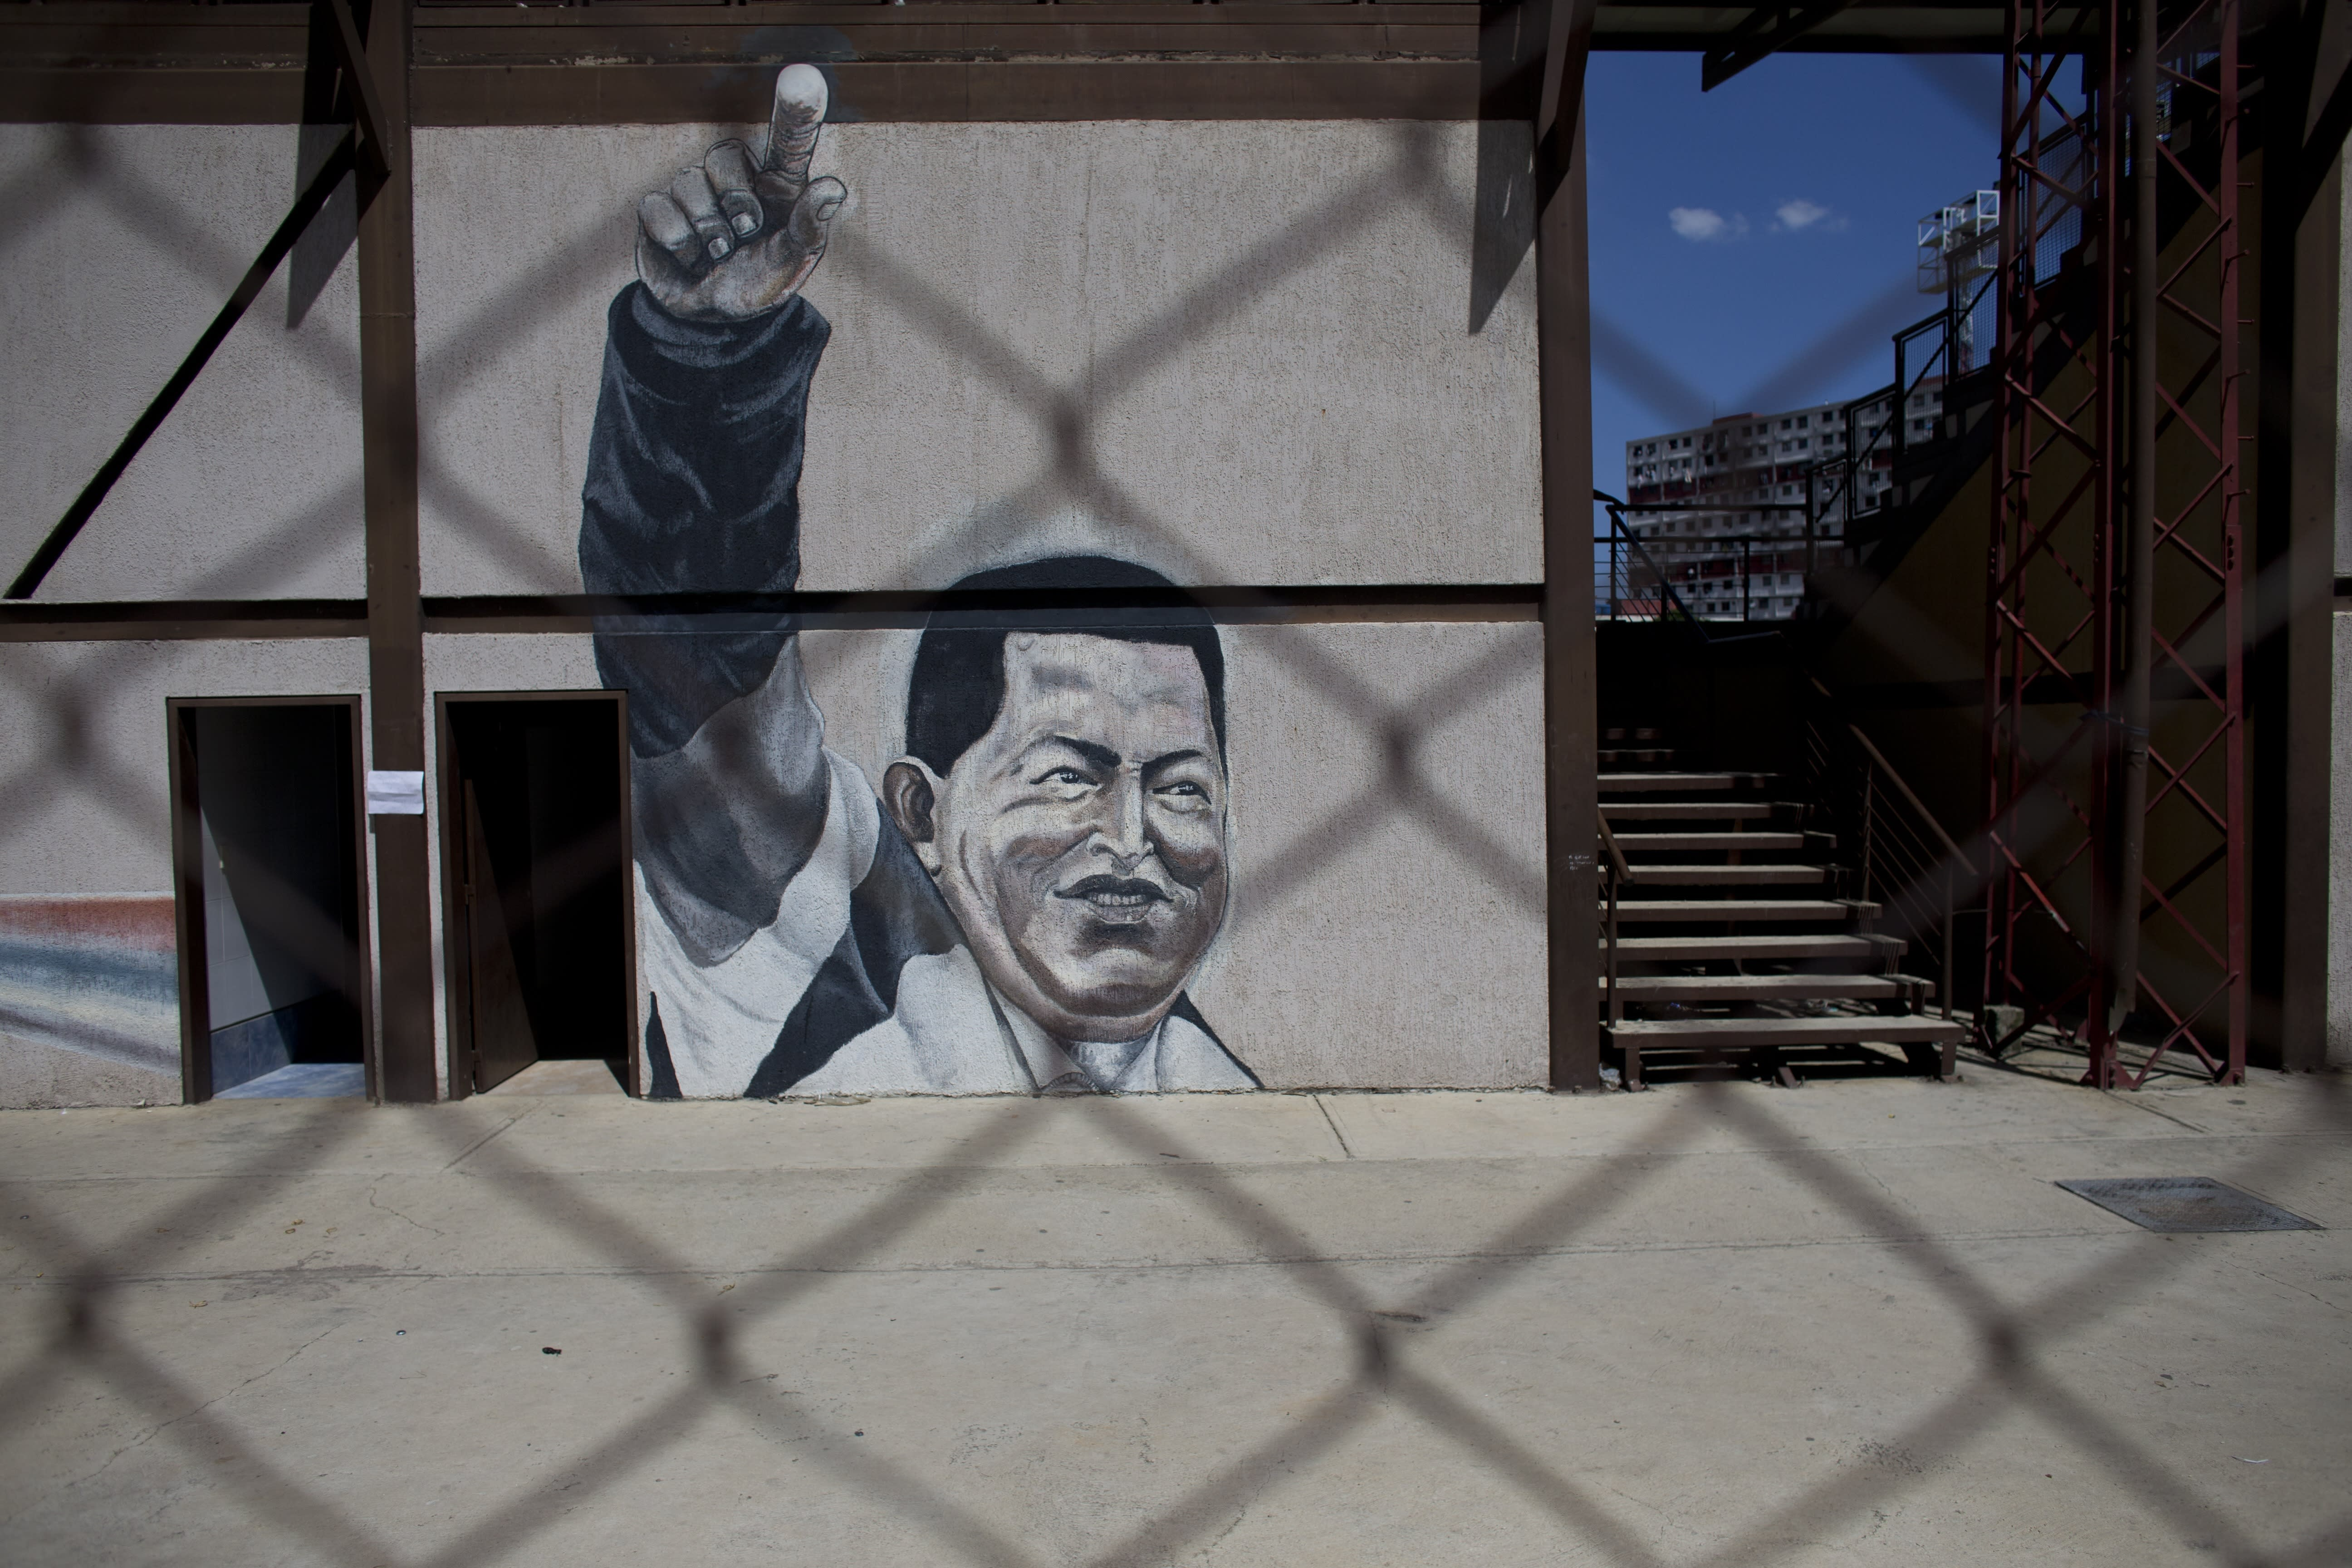 """A mural of Venezuela's late President Hugo Chavez decorates a wall in the """"23 de Enero"""" neighborhood of Caracas, Venezuela, Sunday, July 28, 2019, on his birthday anniversary. Venezuelans are paying homage to Chávez on the day of his birth, which happens to coincide with the birthday of one of the nation's leading opposition figures, Juan Guaidó. (AP Photo/Ariana Cubillos)"""